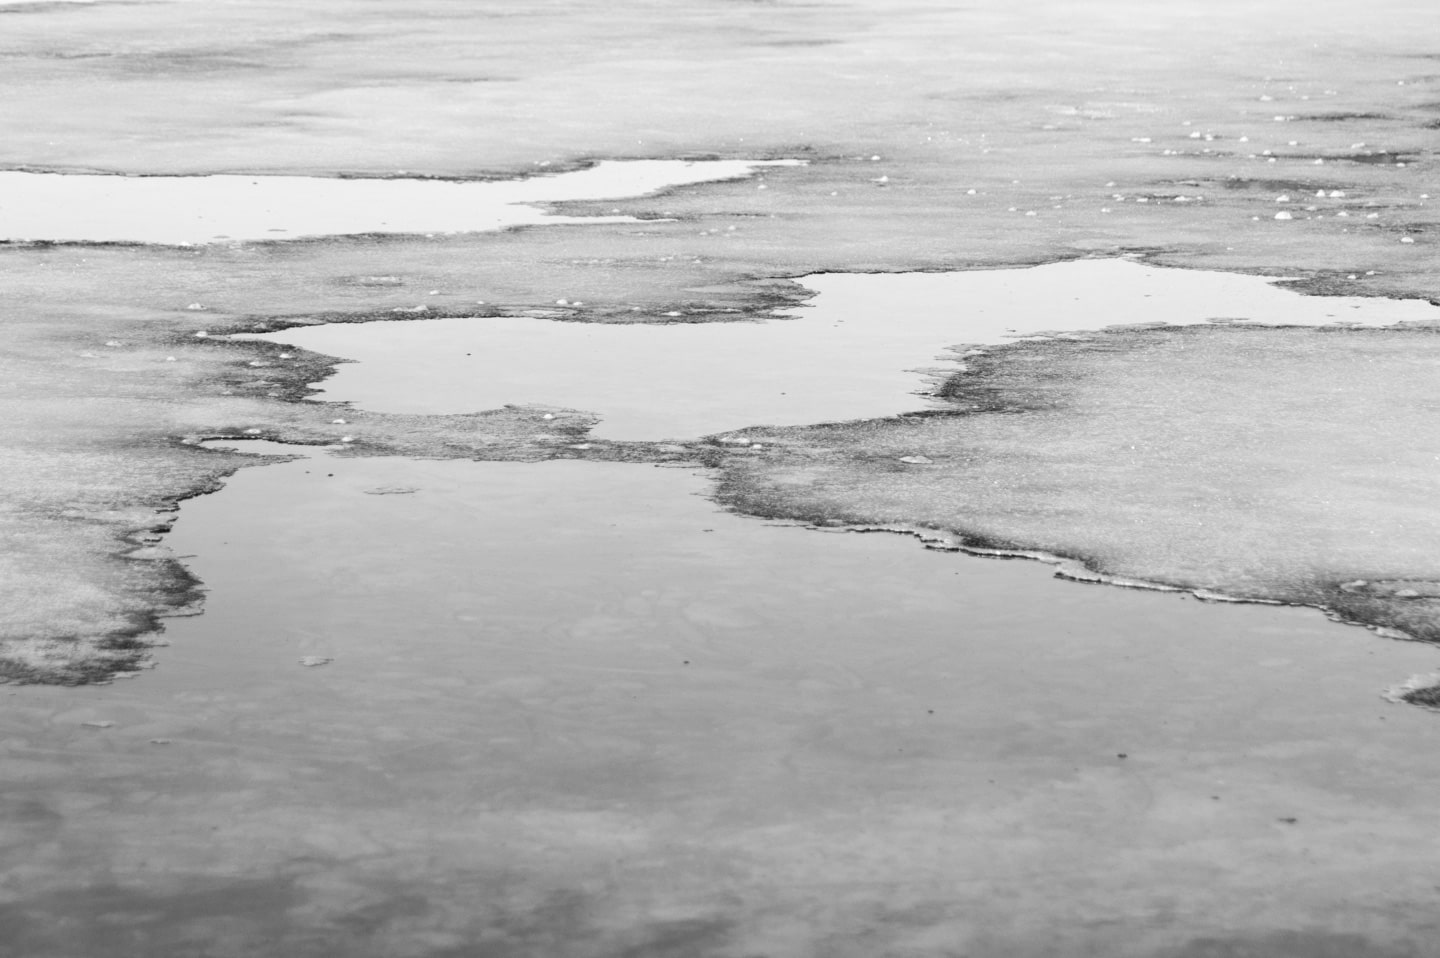 A black and white photograph of ice melting in the shallows of a clear lake. The ice is thin and flat, sparkling in the afternoon light, and the water is glassy calm, reflecting the clear luminous sky.